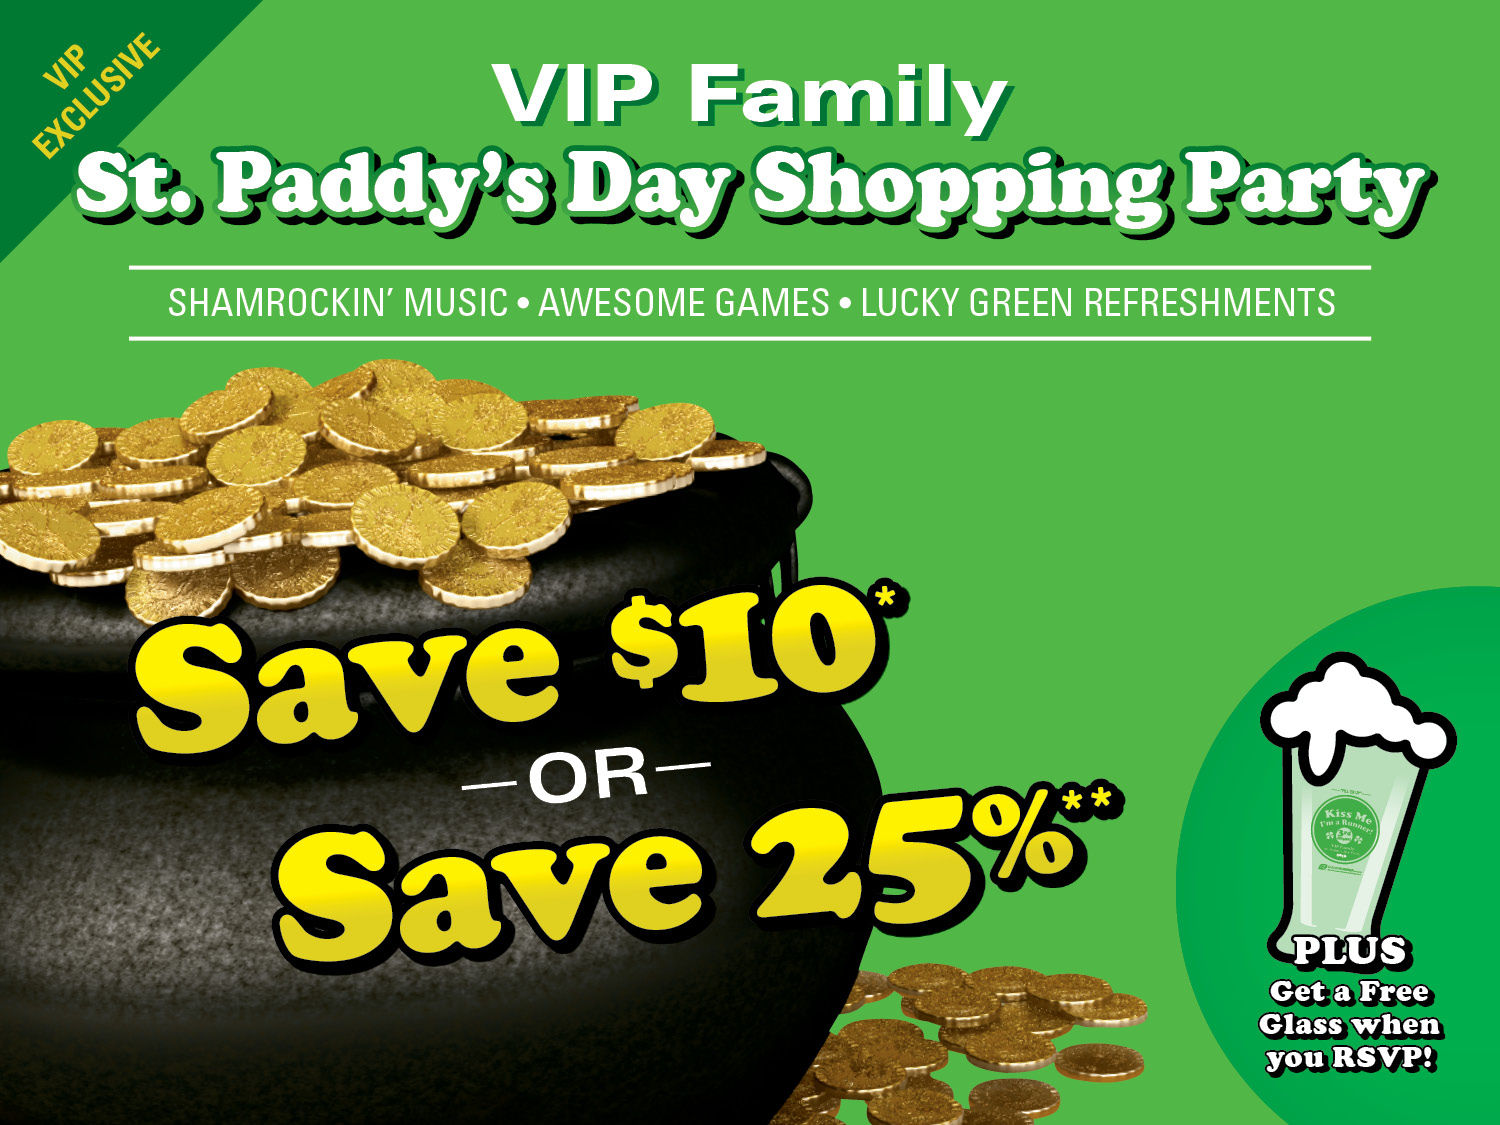 VIP Family St. Paddy's Day Shopping Party